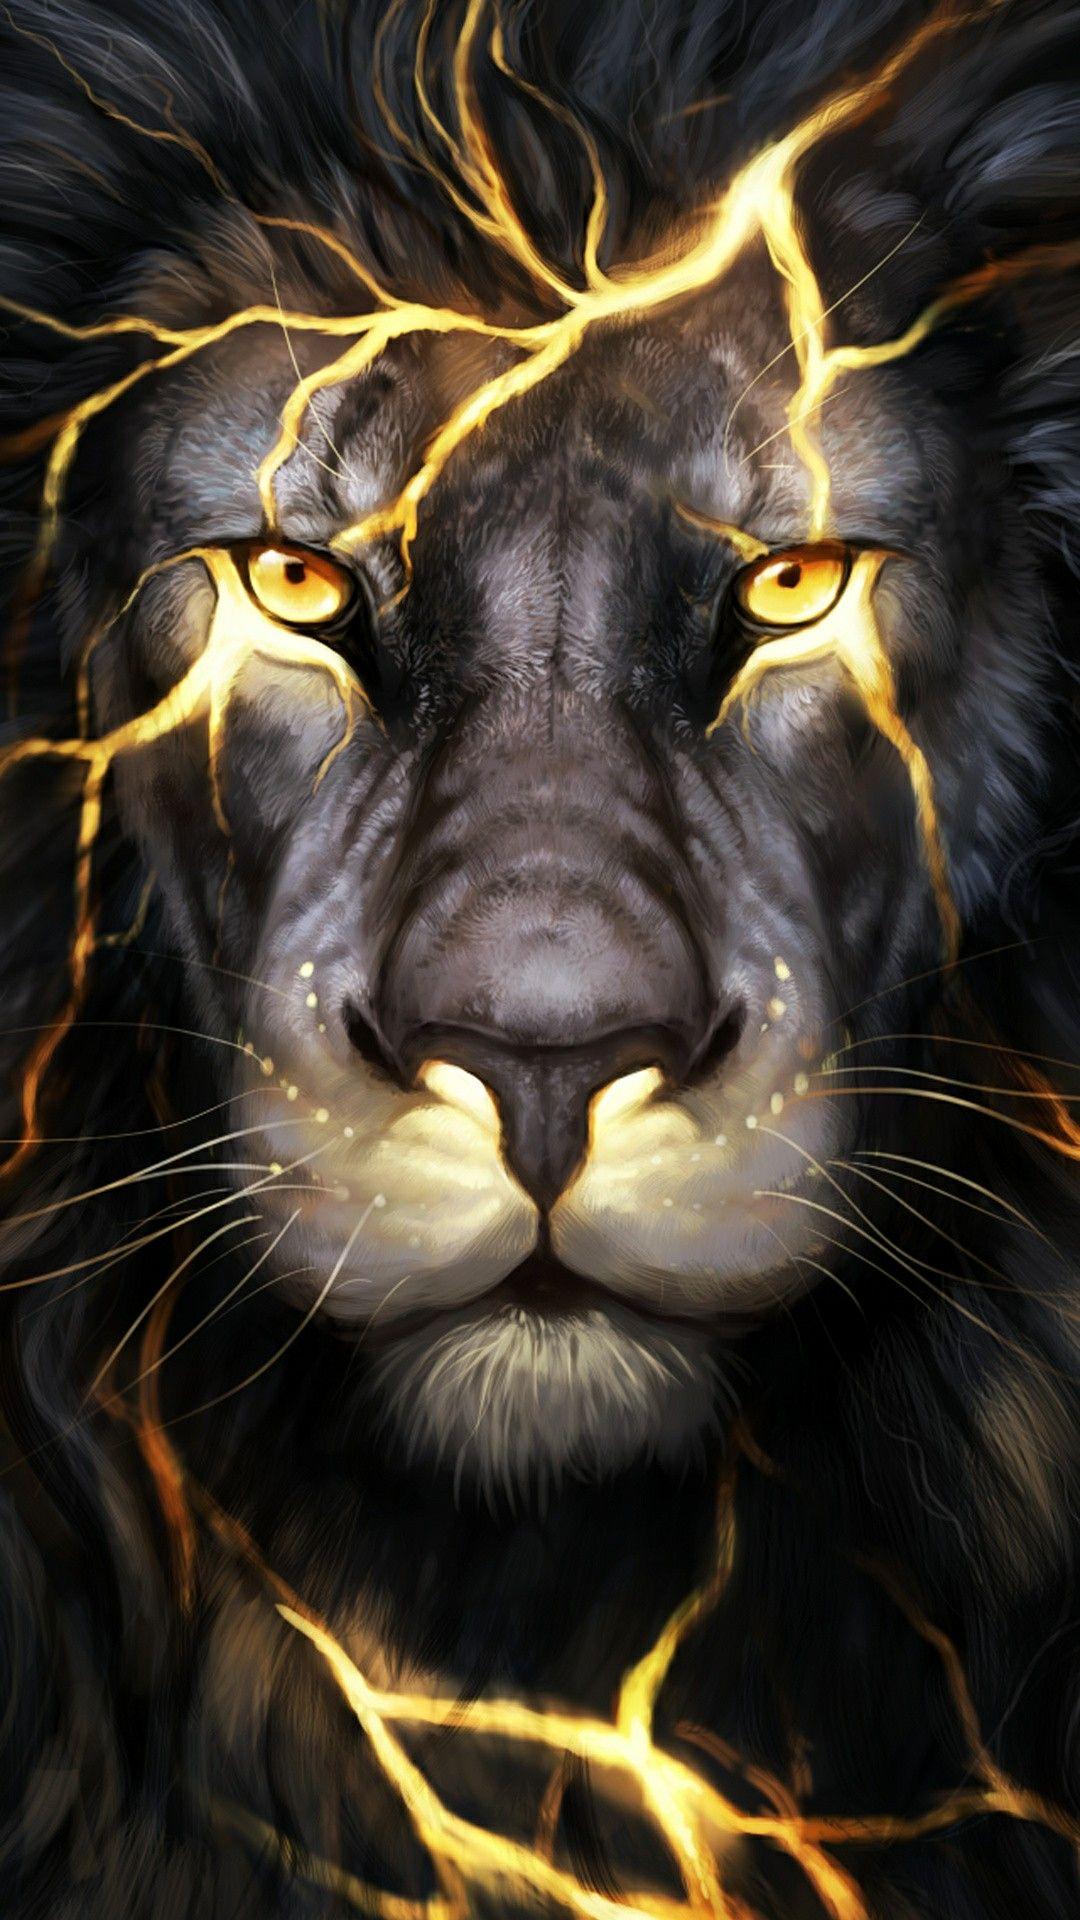 Lion wallpaper to see more click on image iphone6